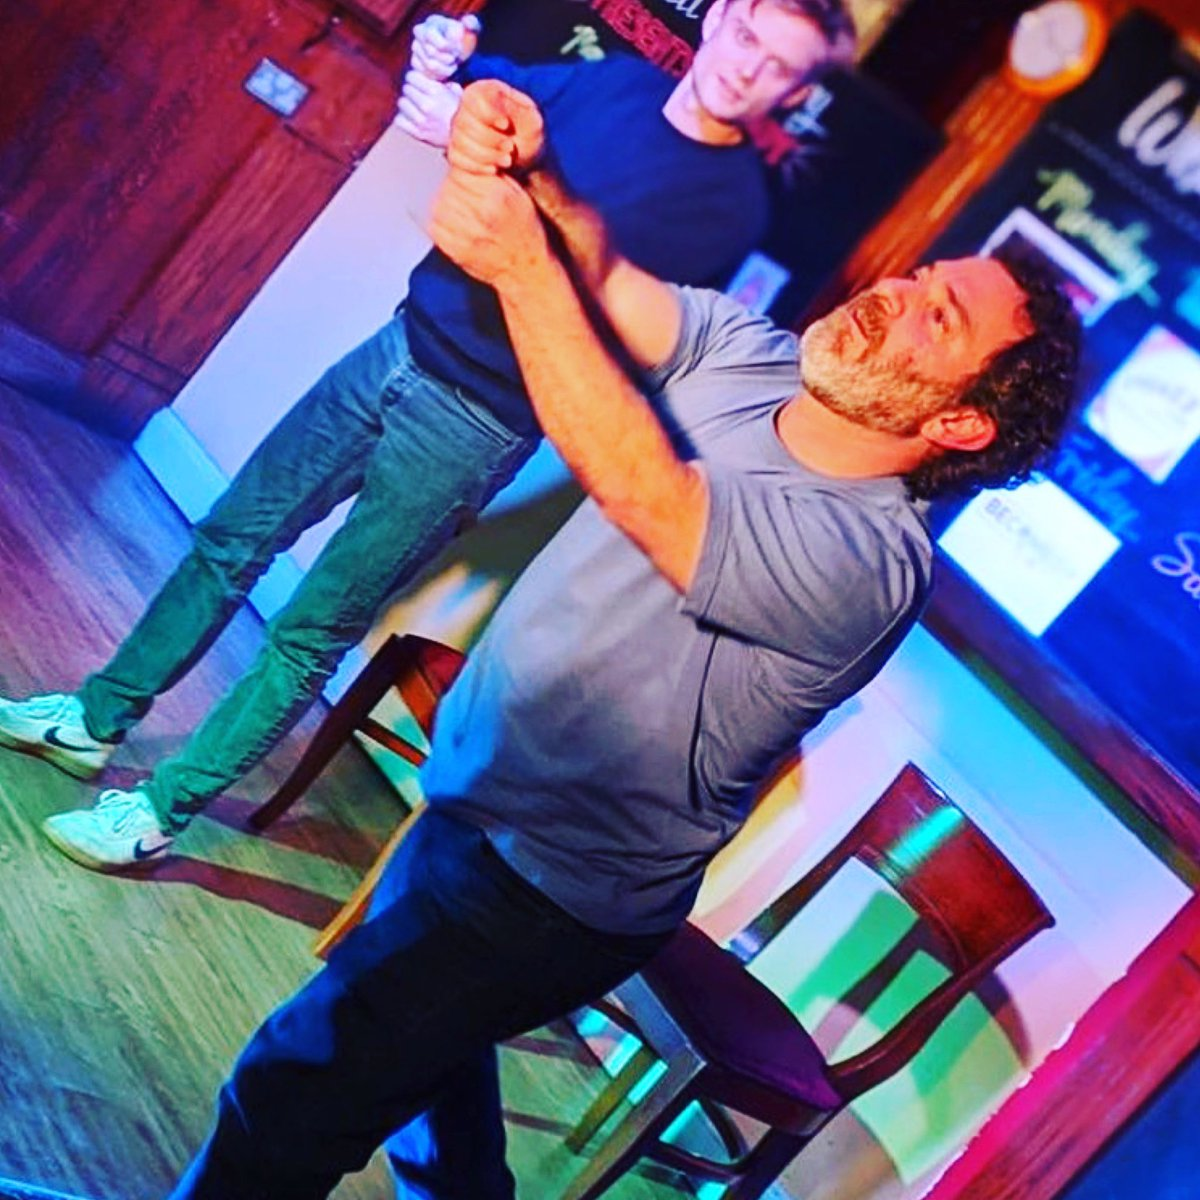 mprov Comedy Tonight at The Hollywood Arms from @kidsmokersimprov! No ticket required, swing by for some unplanned hilarity! #sw10 #chelsea #improv #comedy #whattodoinchelsea #whatson #comedynight https://t.co/EbaHHx6tZ1